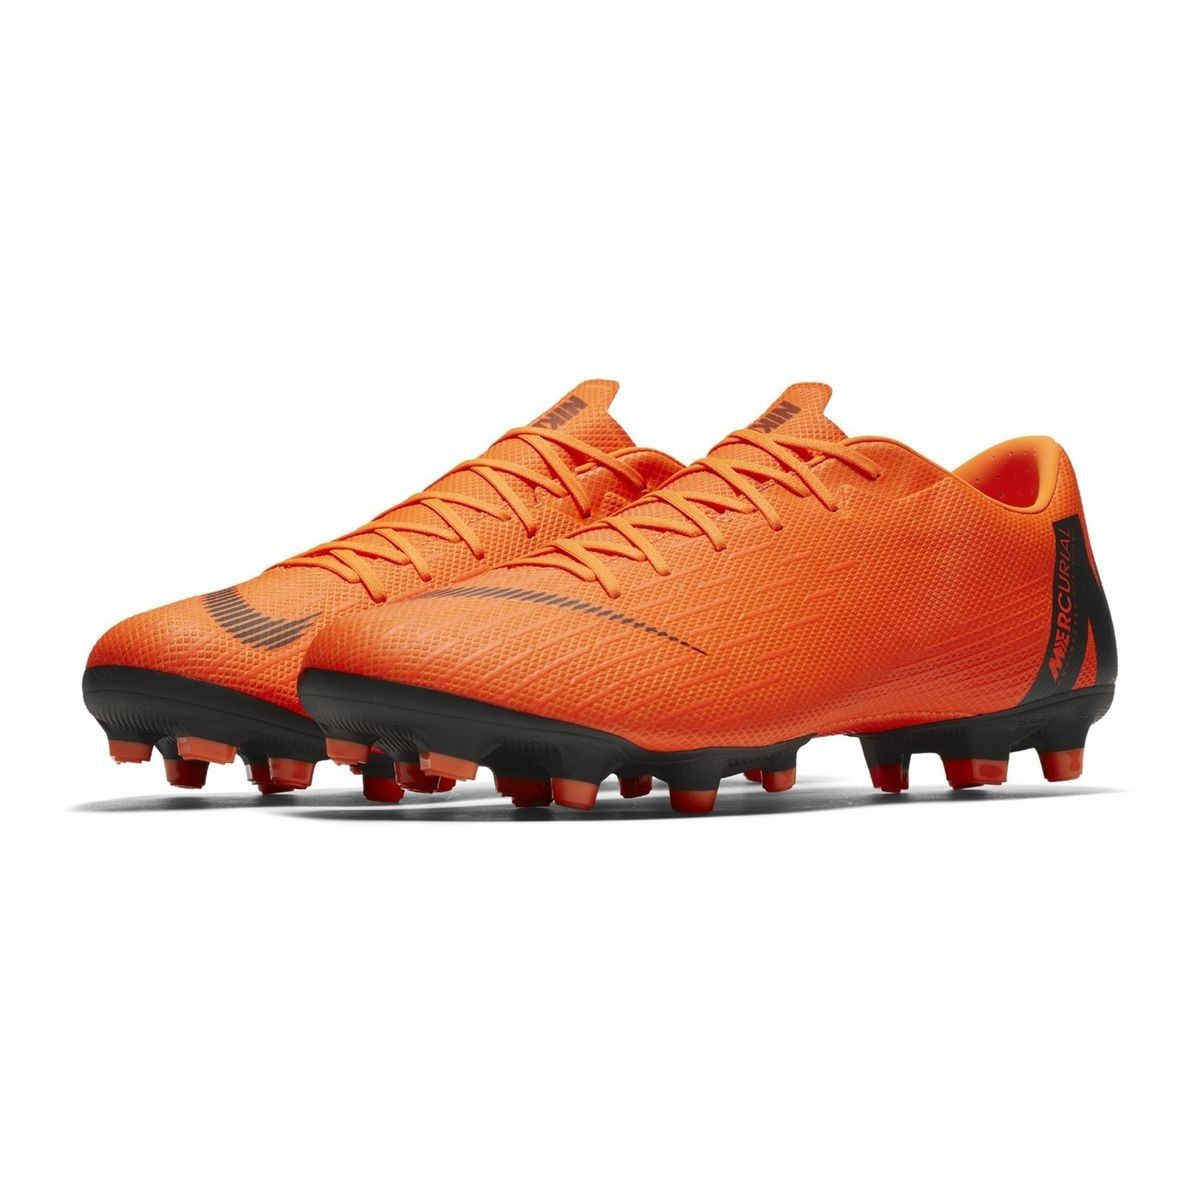 timeless design fda2c 35b3a Nike Jr. Mercurial Vapor XII Academy Younger/Older Kids' Multi-Ground  Football Boot - Grey | Products | Pinterest | Football boots, Football and  Boots